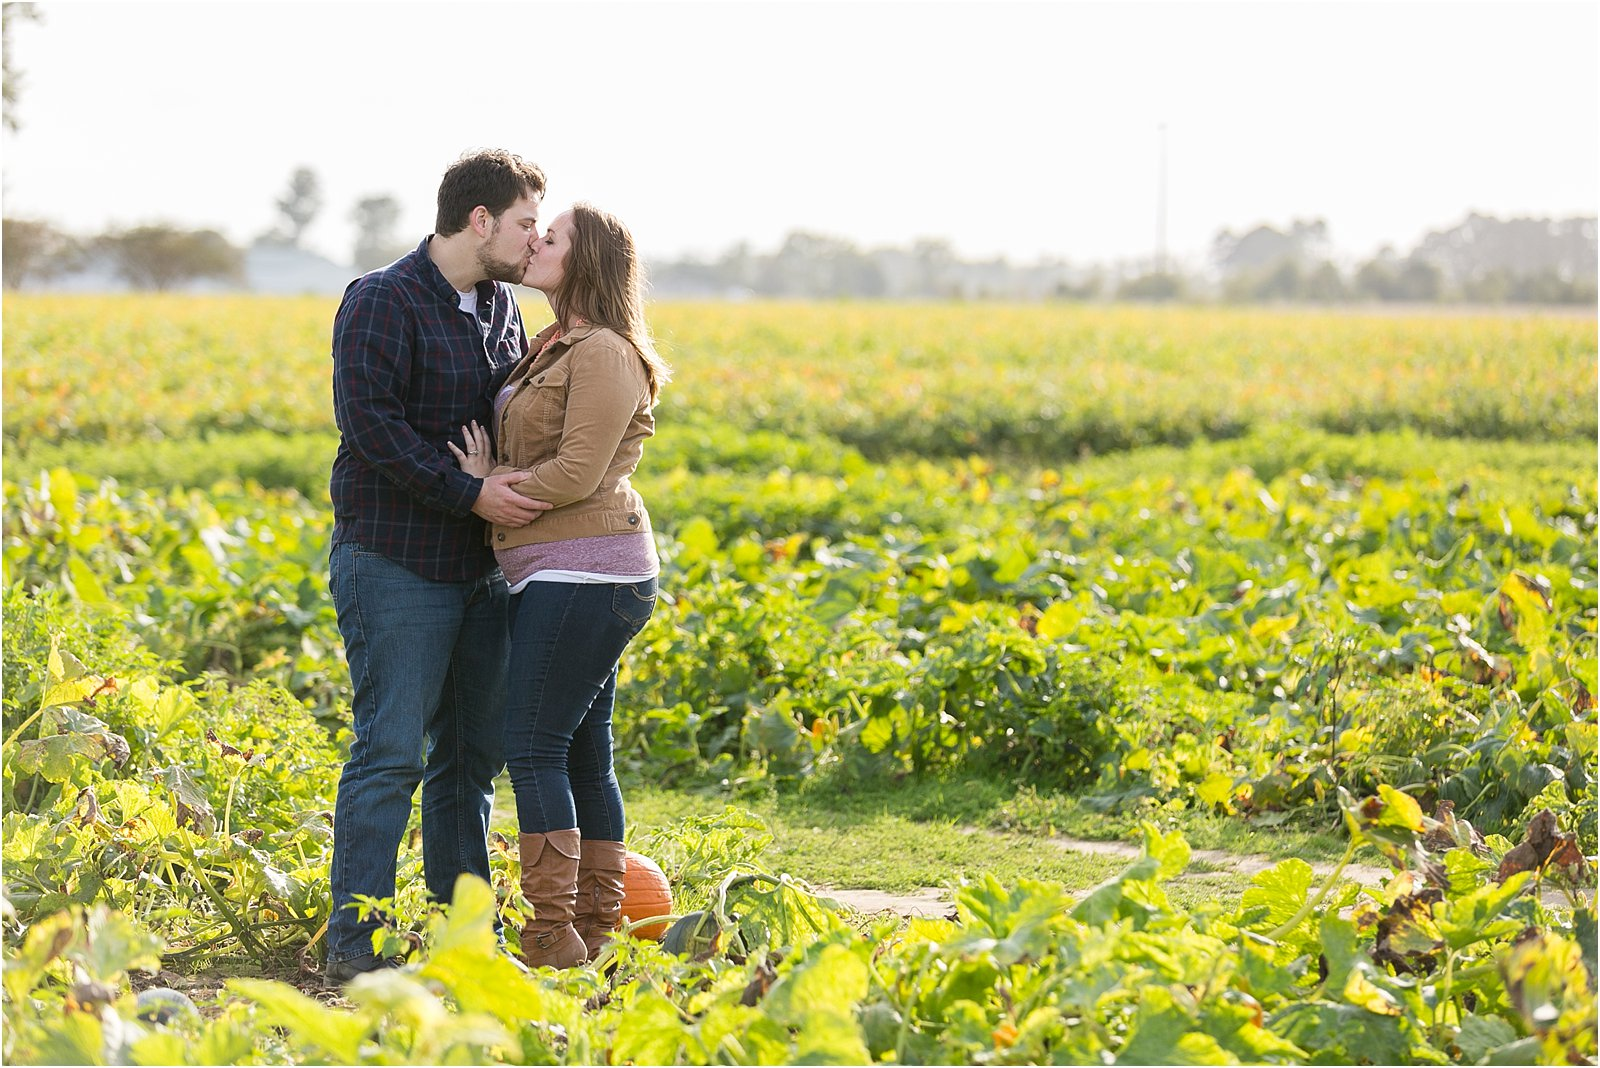 jessica_ryan_photography_pumpkin_patch_engagement_portraits_fall_october_engagements_virginia_beach_chesapeake_0284